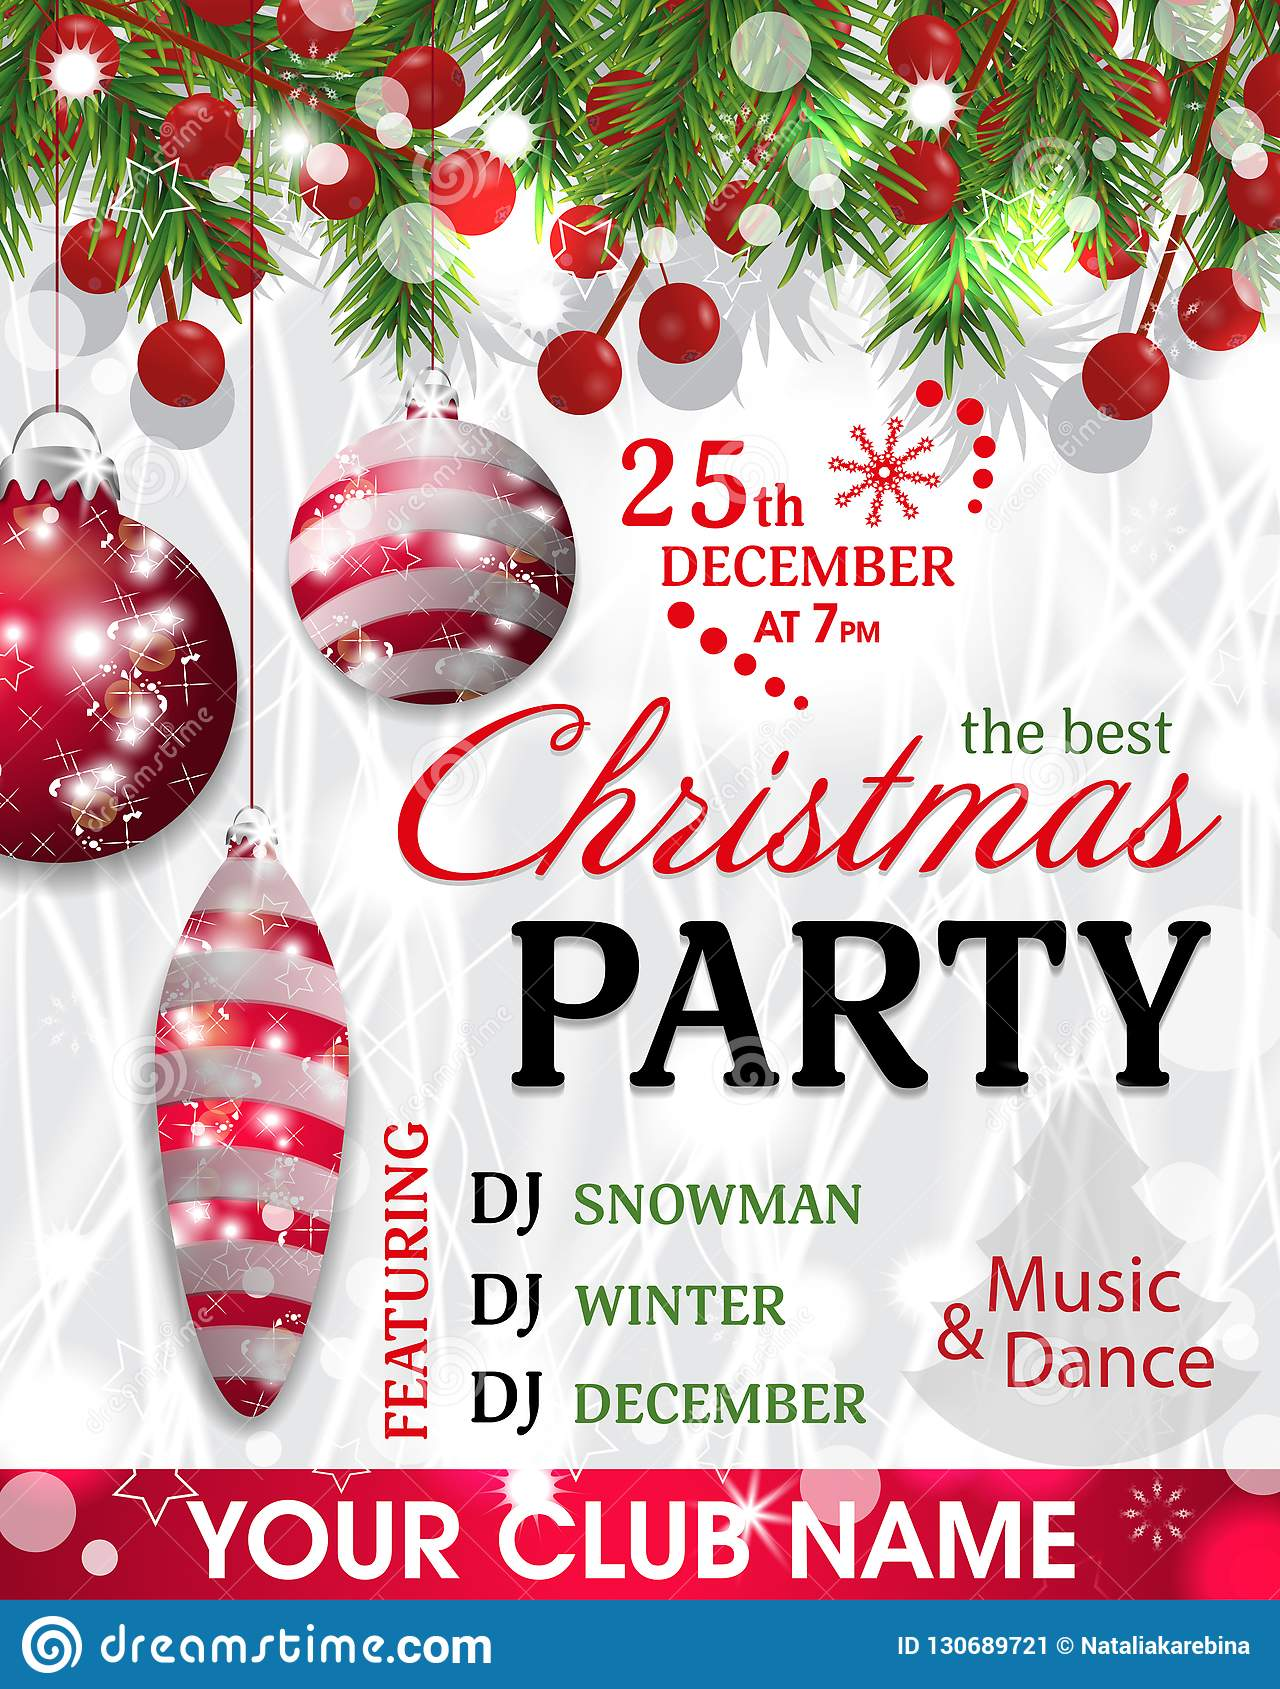 Christmas Party Flyer Template.Christmas Party Invitation Template Background With Fir